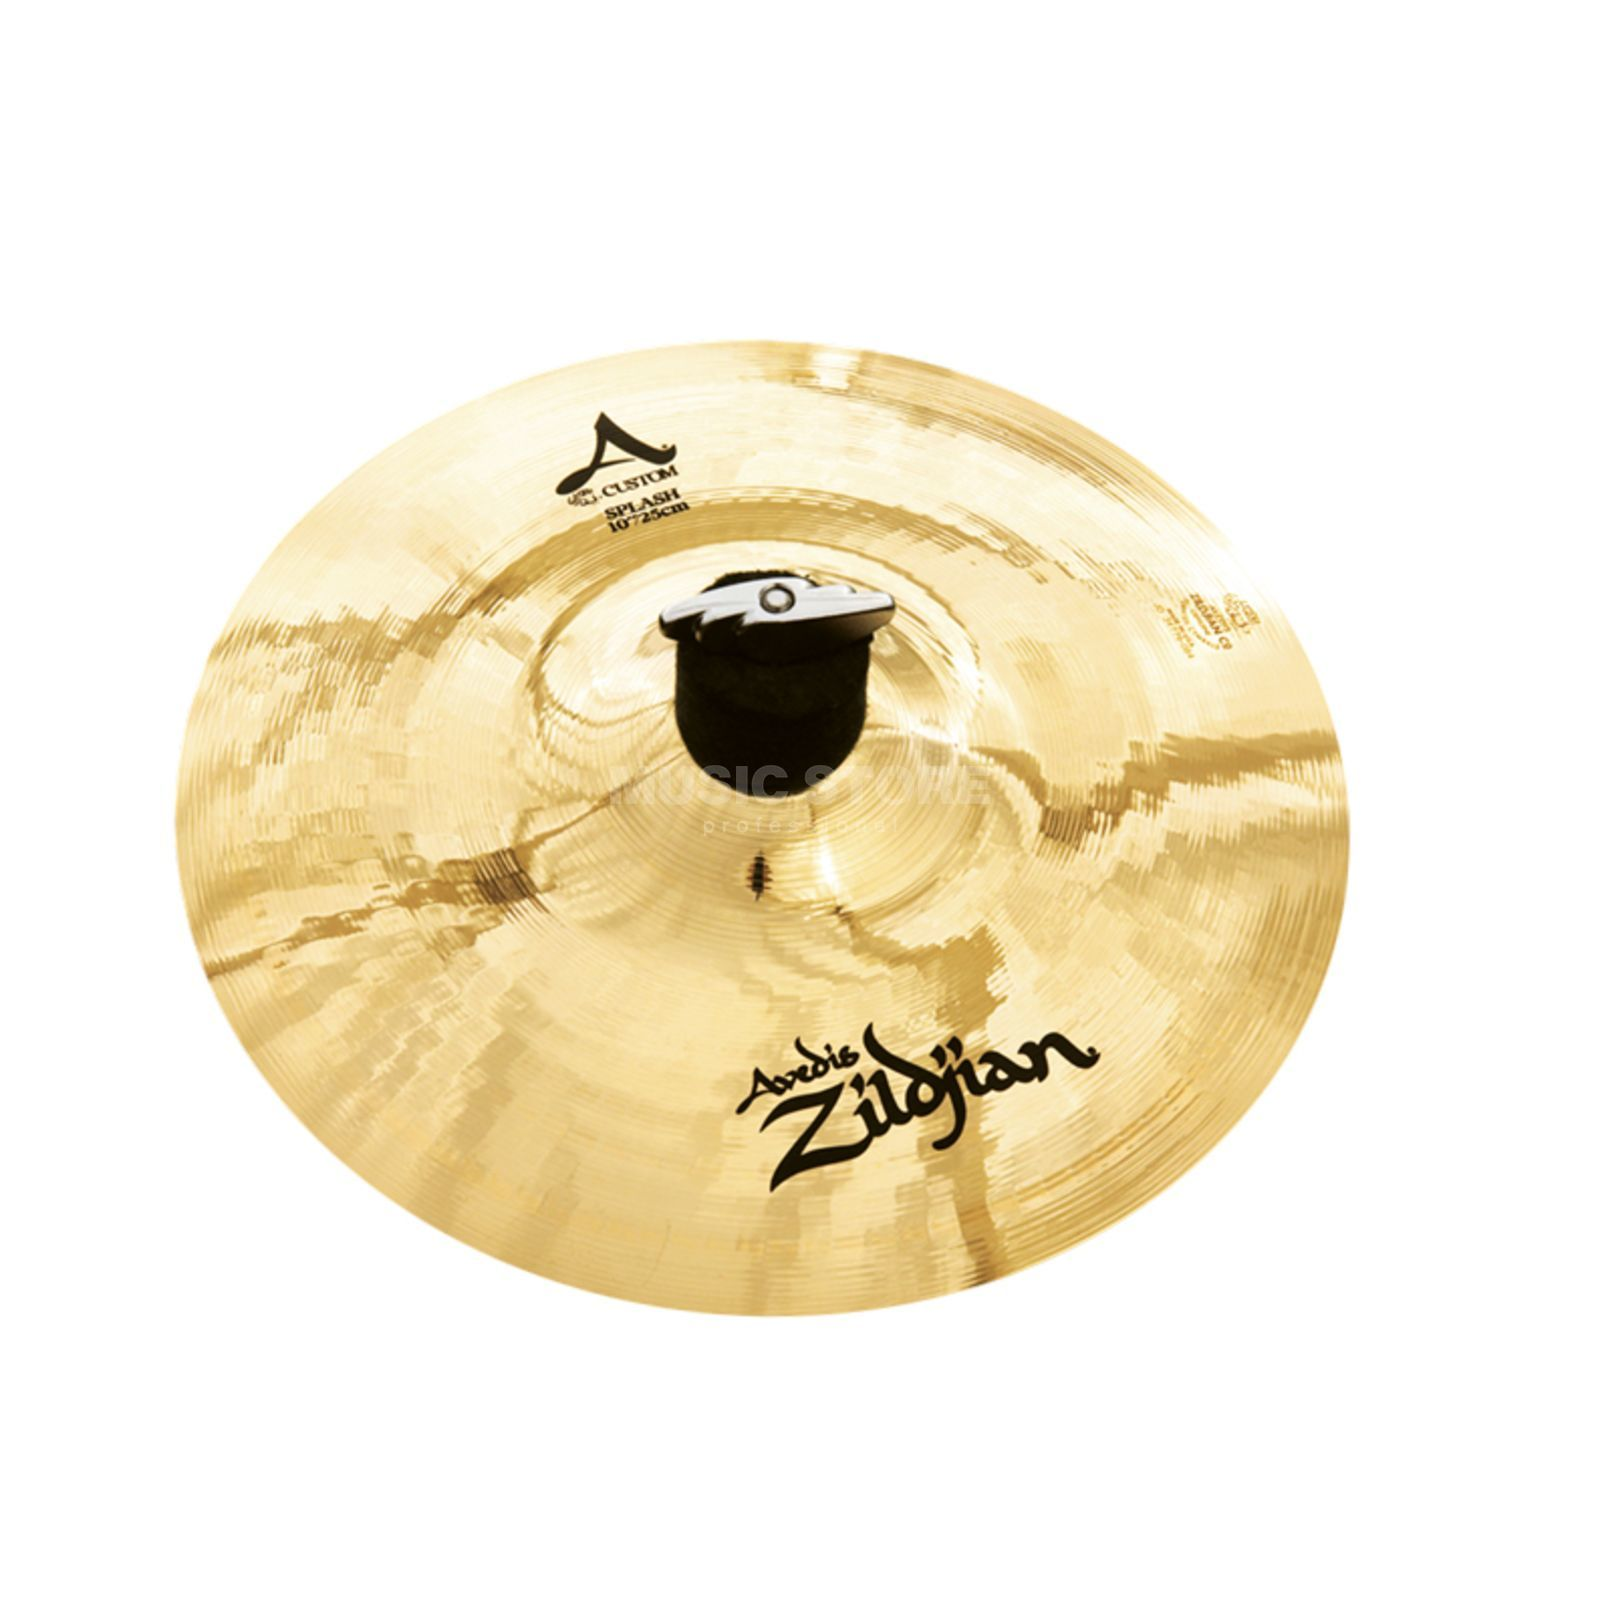 "Zildjian A-Custom Splash 10"" Finition brillante Image du produit"